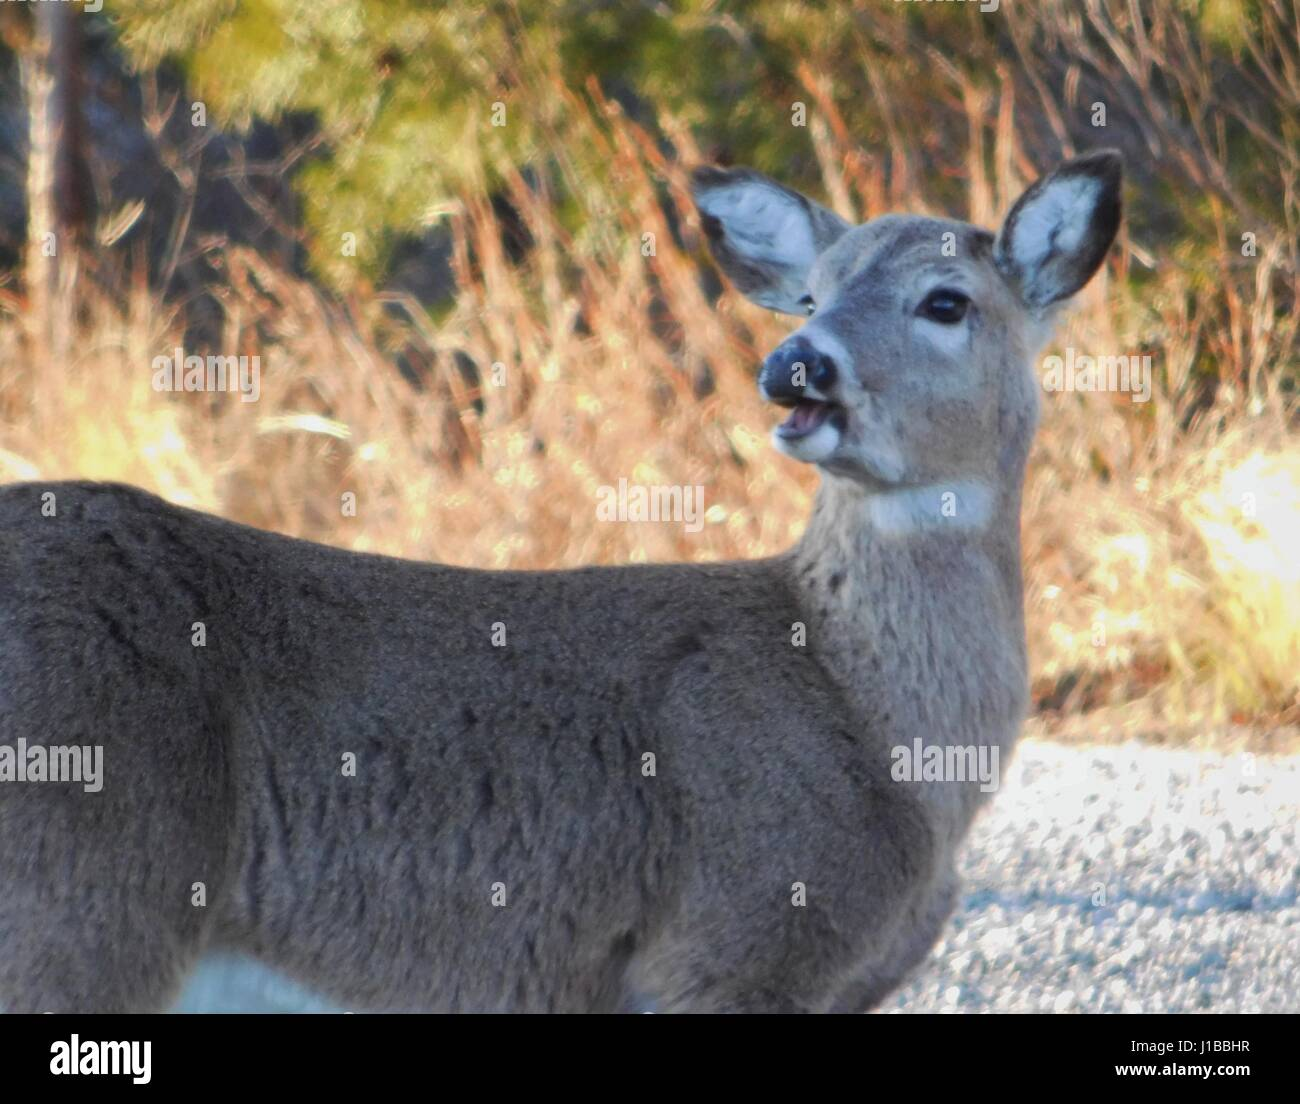 The Doe Has Something to say - Stock Image